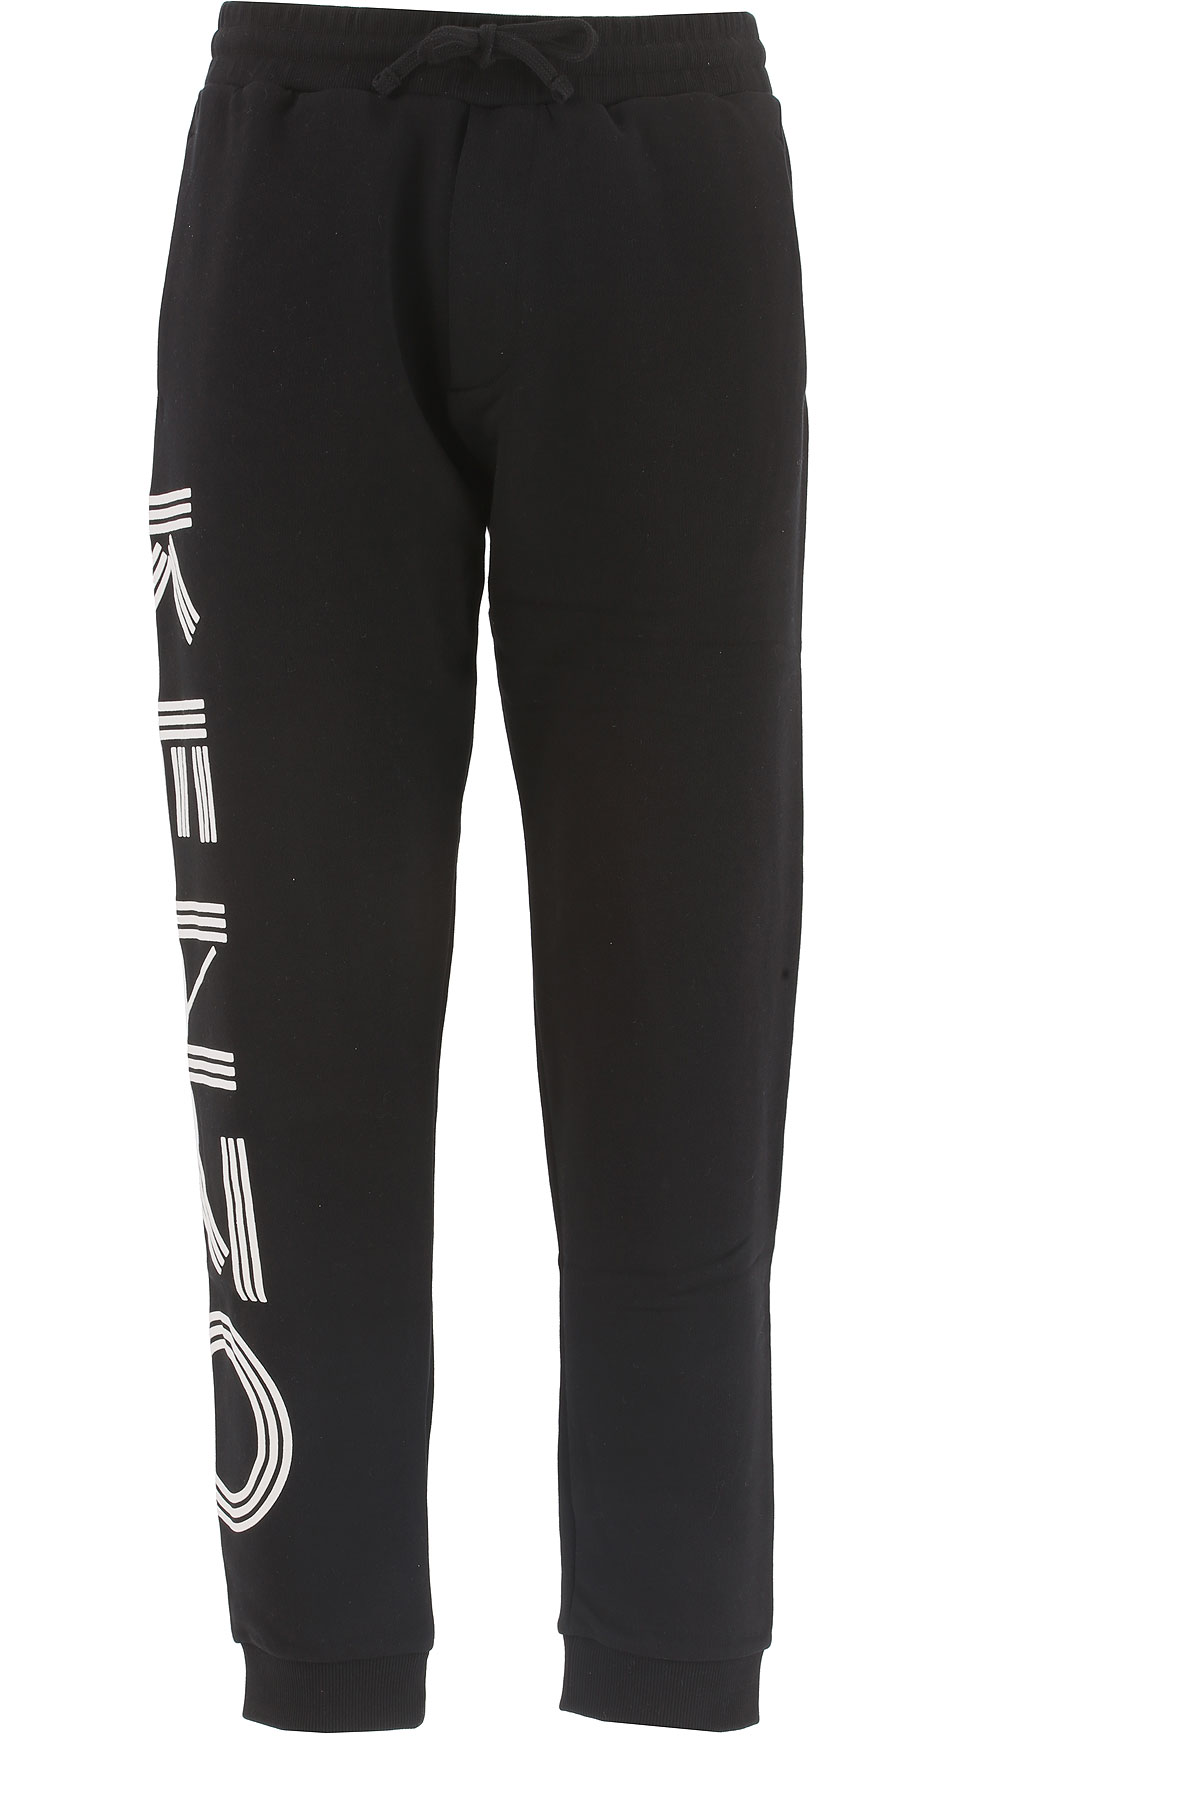 Kenzo Pants for Men On Sale, Black, Cotton, 2017, 30 L XL